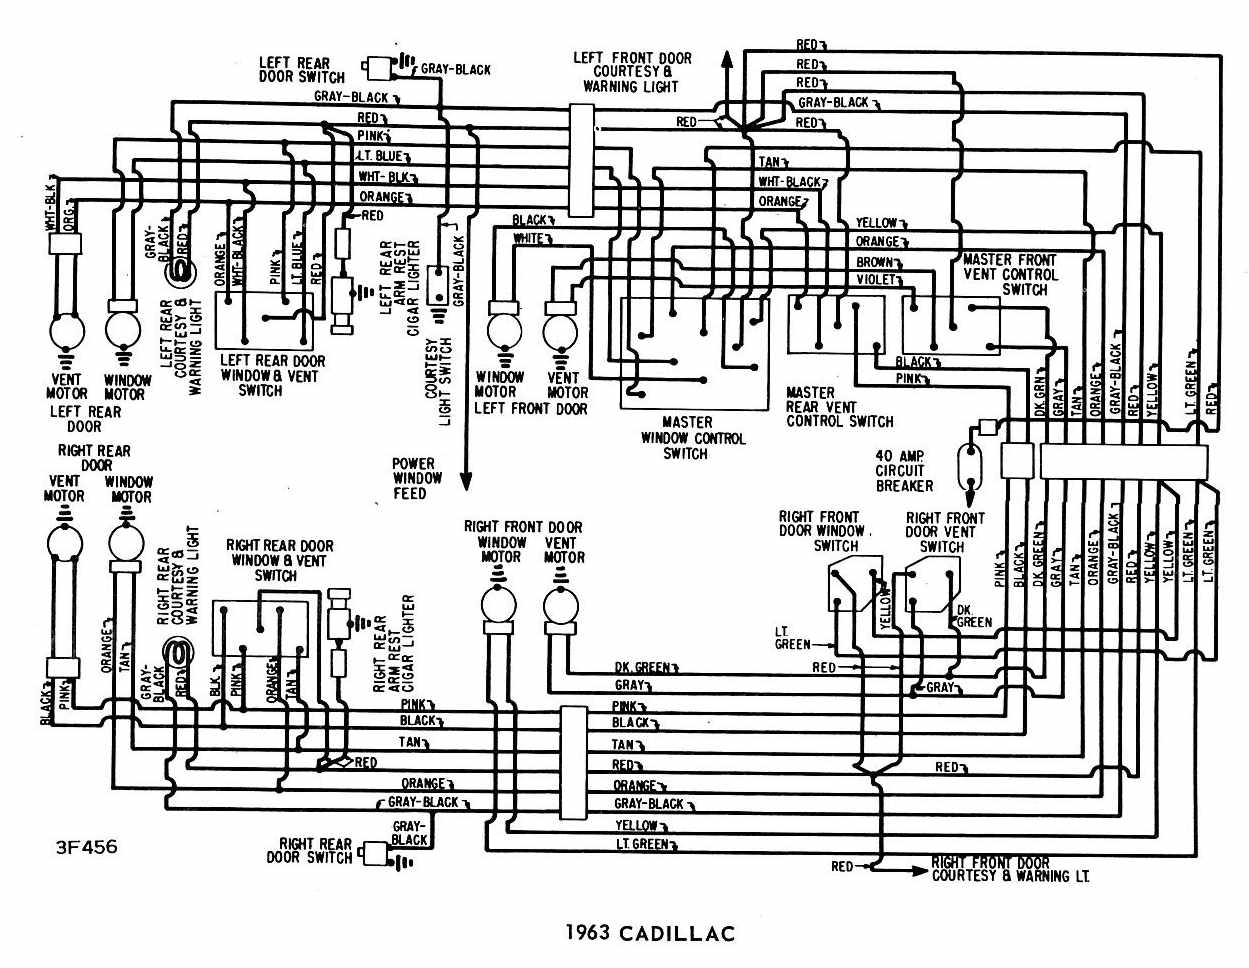 Cadillac 1963 Windows Wiring Diagram | All about Wiring